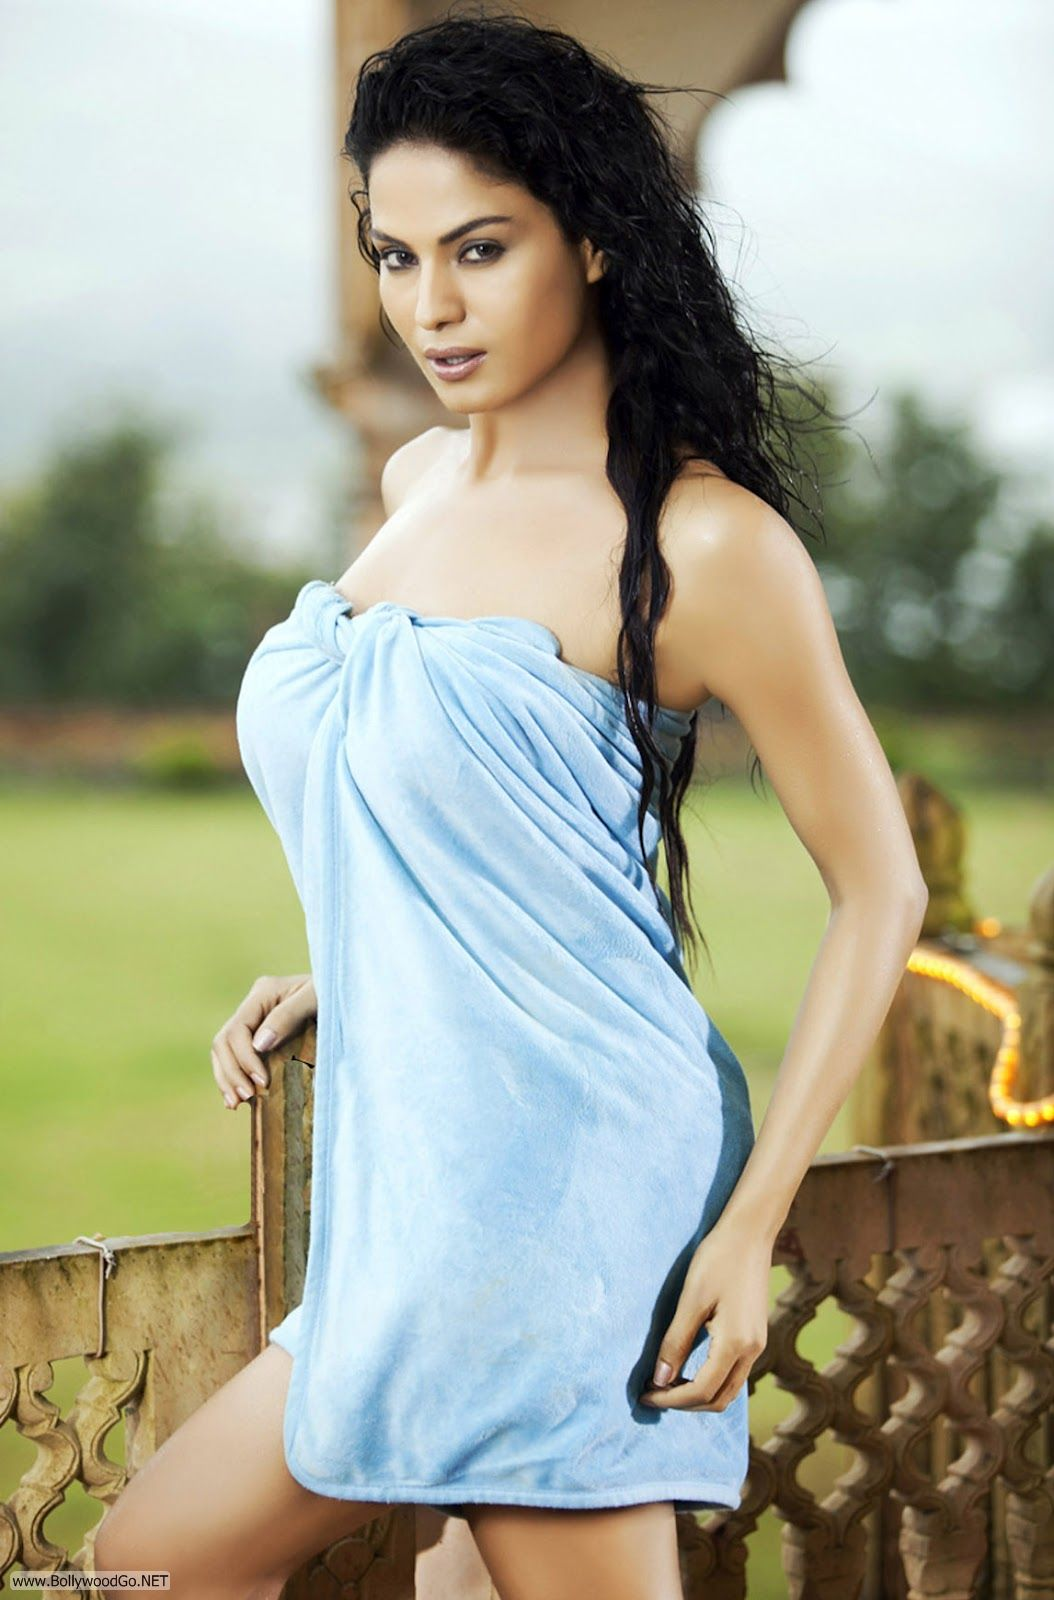 Dropped Her Towel http://www.bollywoodgo.net/2012/06/veena-malik-blue-pics-in-towel-hot.html